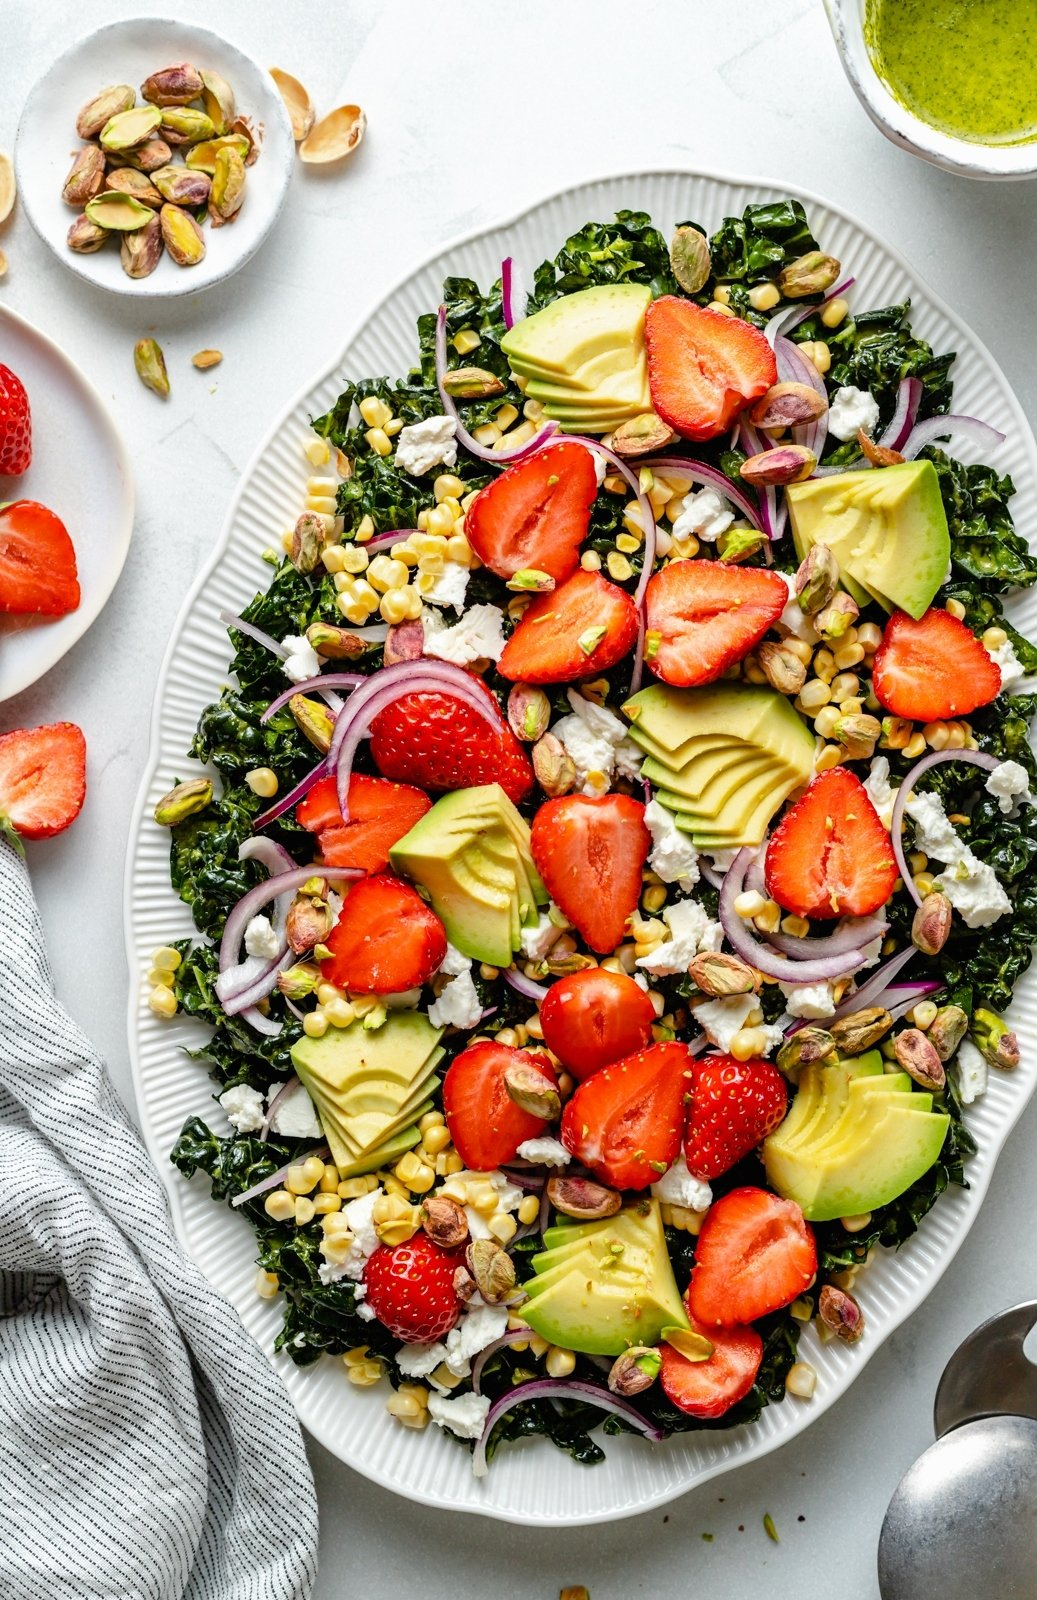 summer kale salad with strawberries on a platter